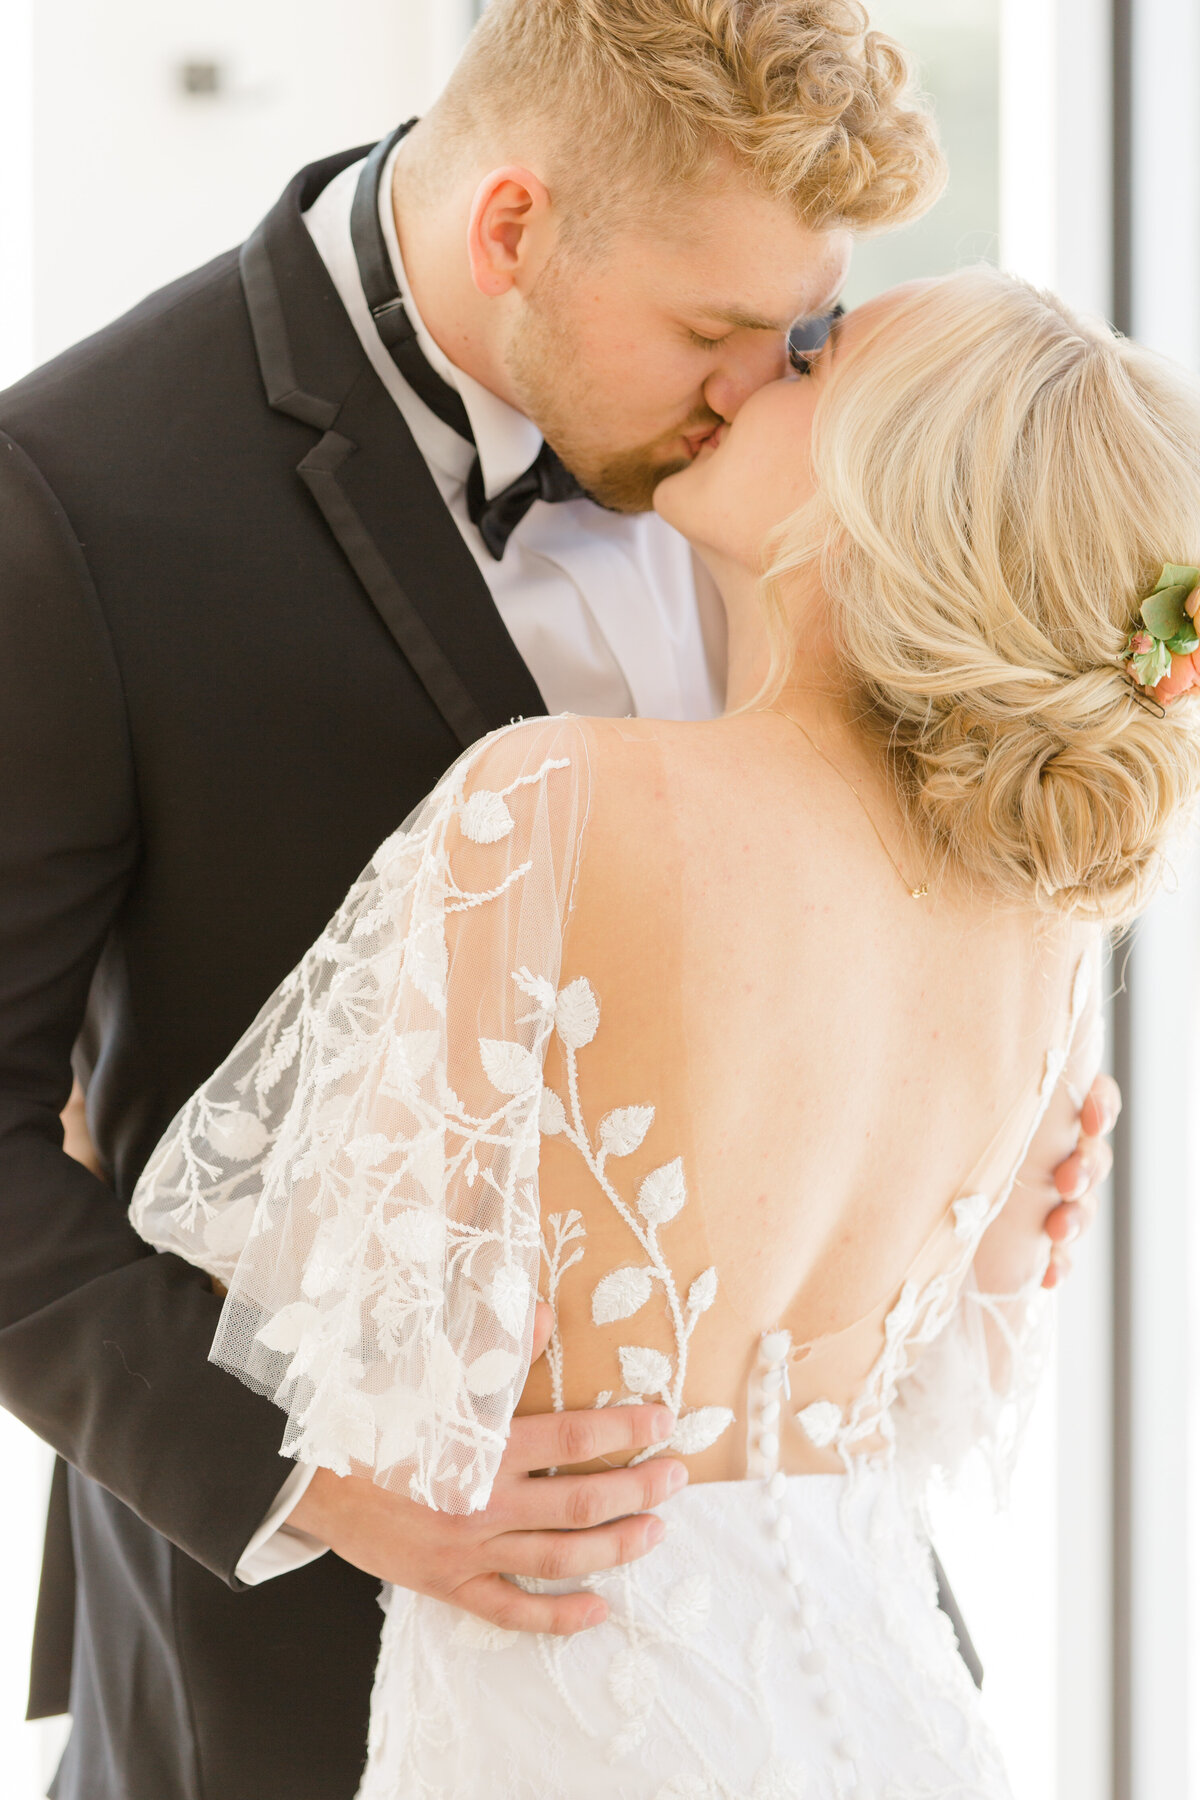 lindsey-taylor-photography-chicago-wedding-photographer-12